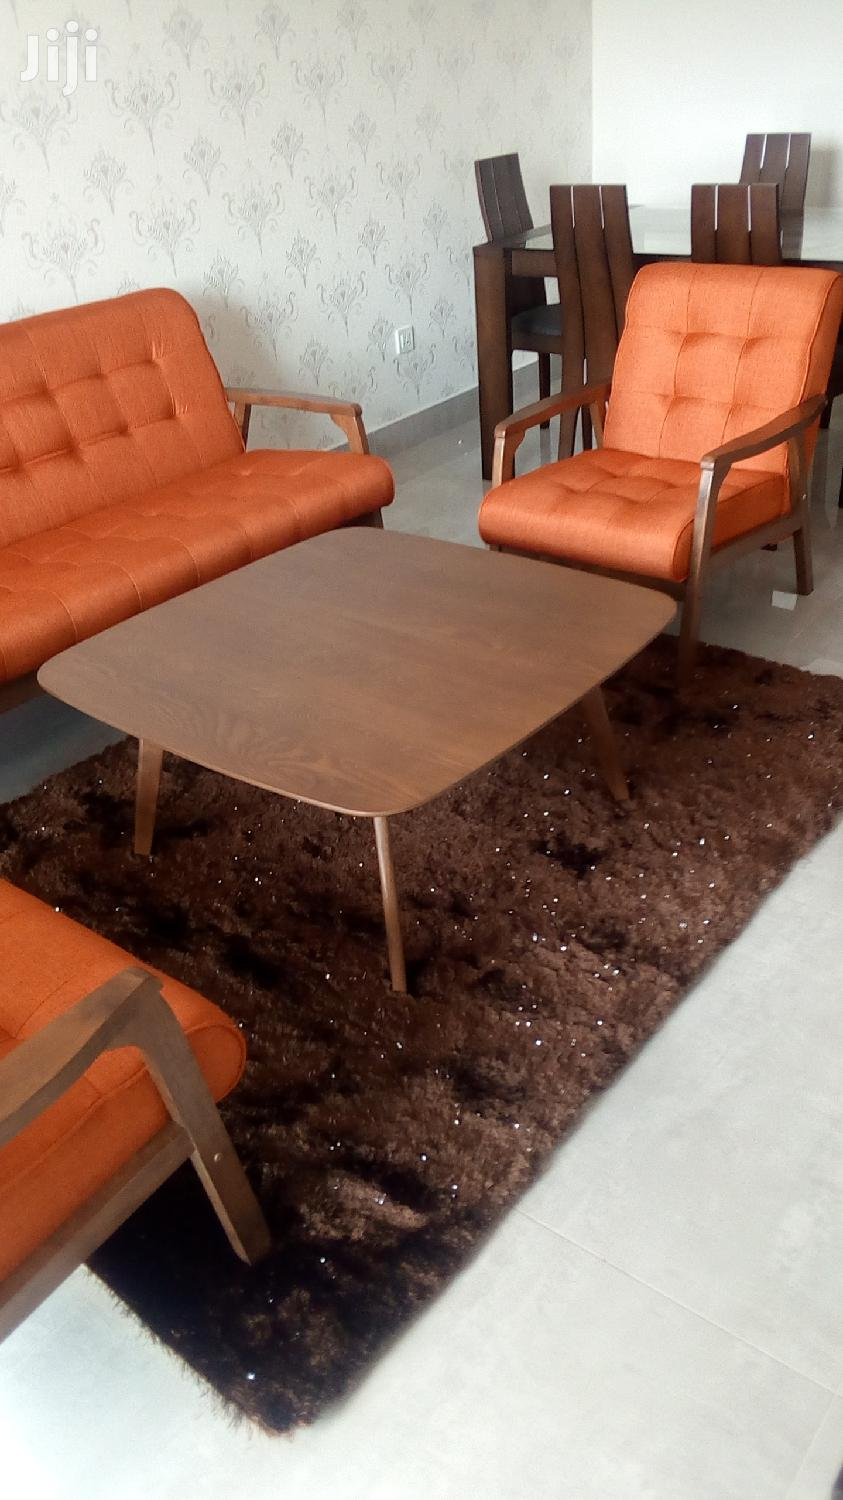 One Bedroom Furnished For Rent | Houses & Apartments For Rent for sale in Airport Residential Area, Greater Accra, Ghana